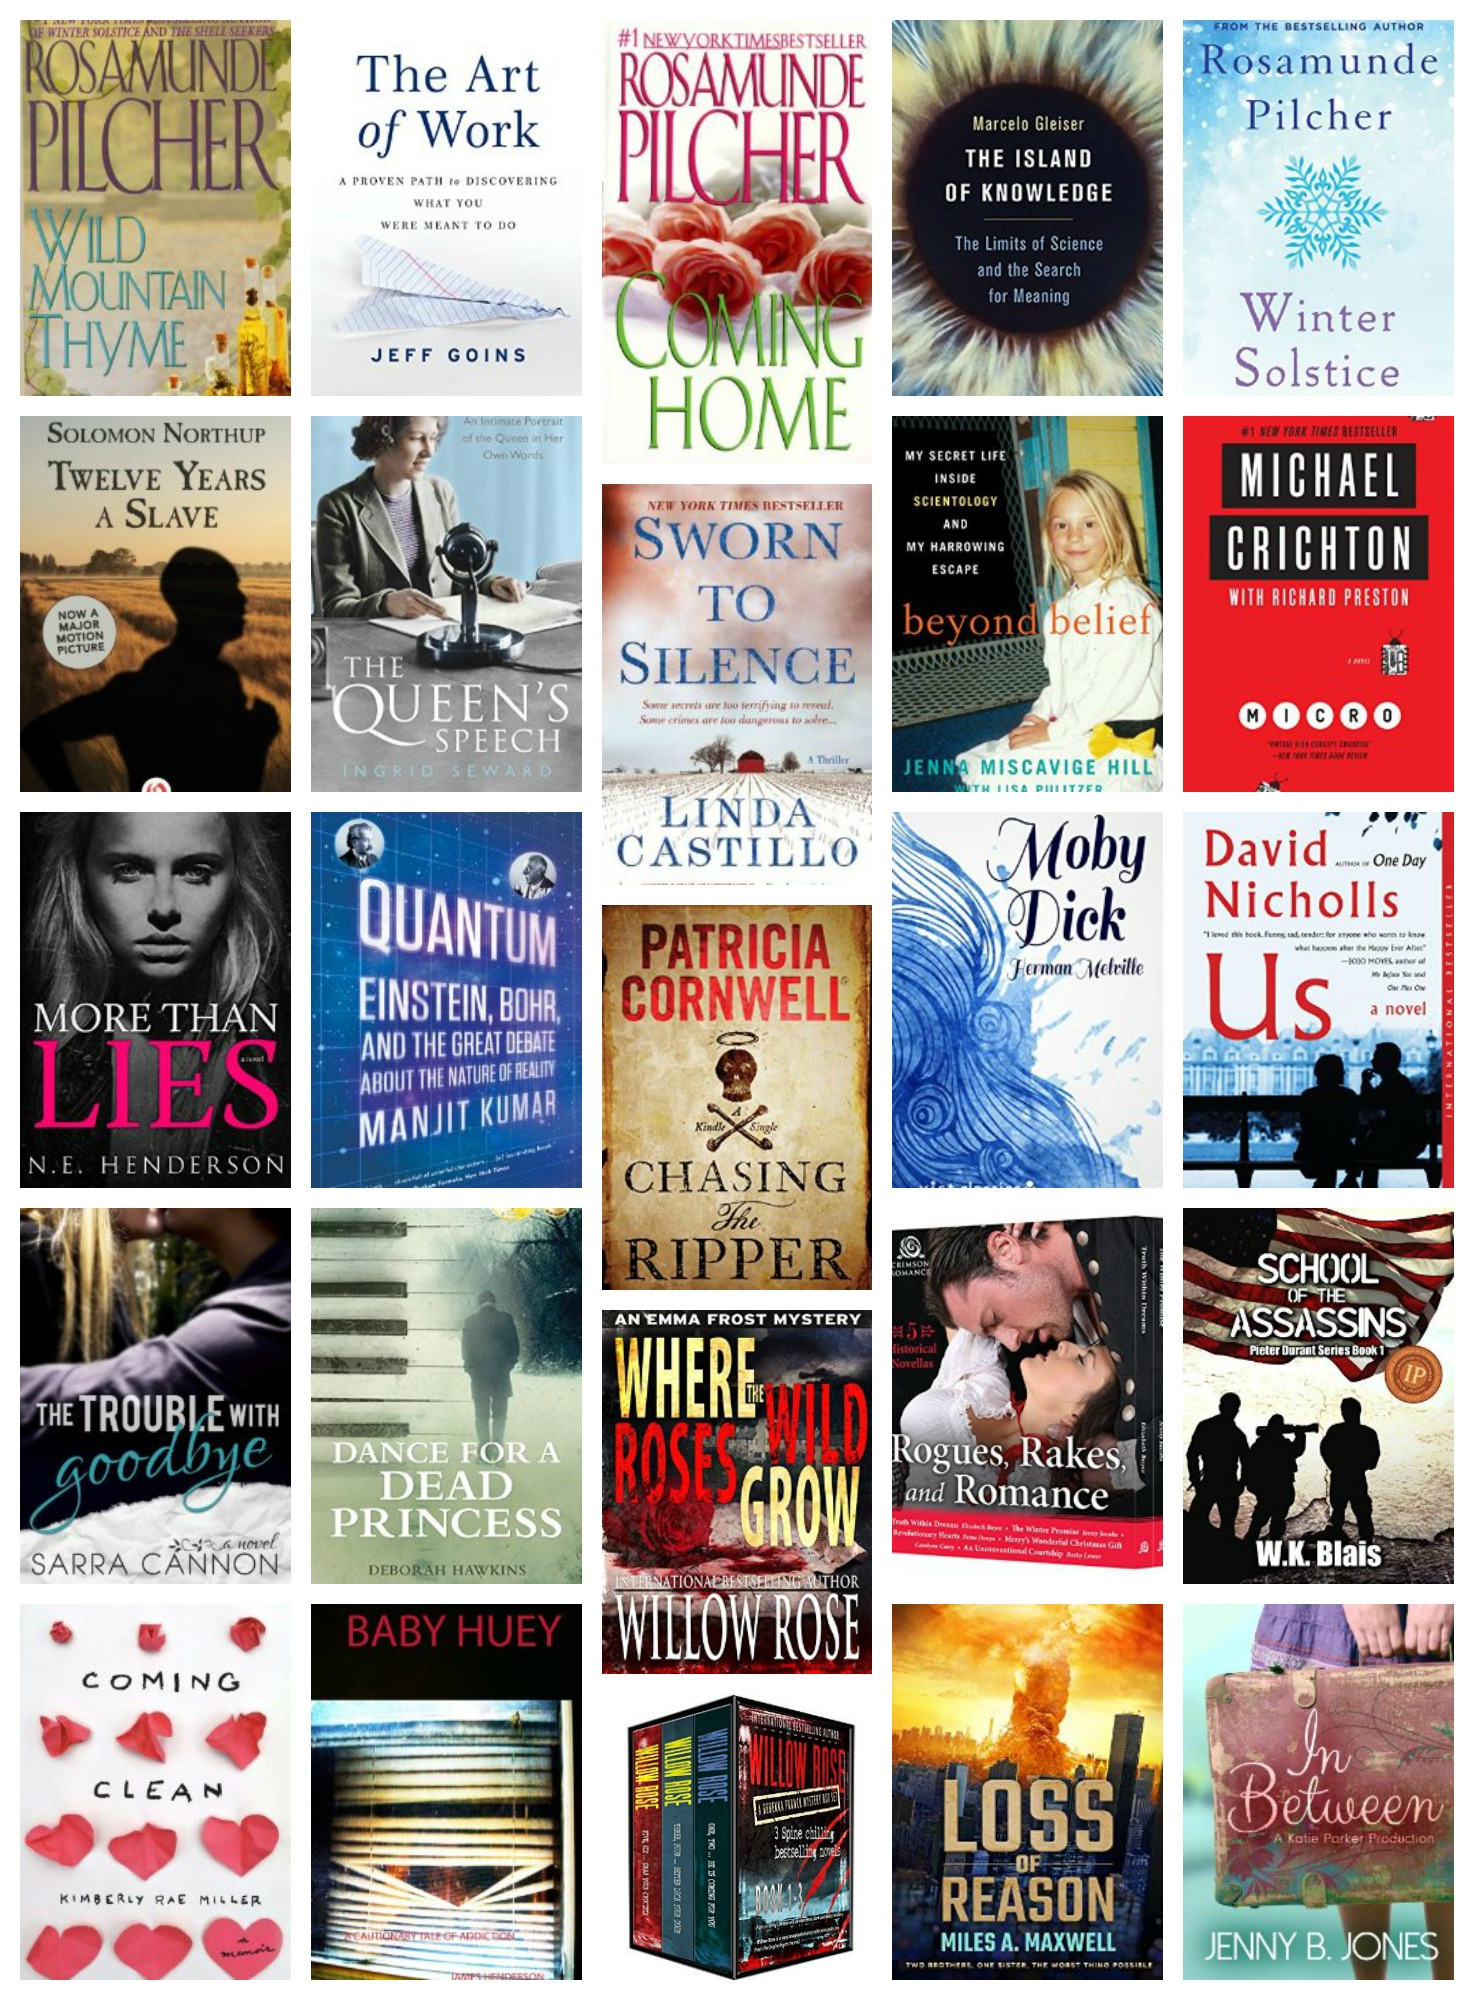 BookGorilla Email Alert for 12/30/15